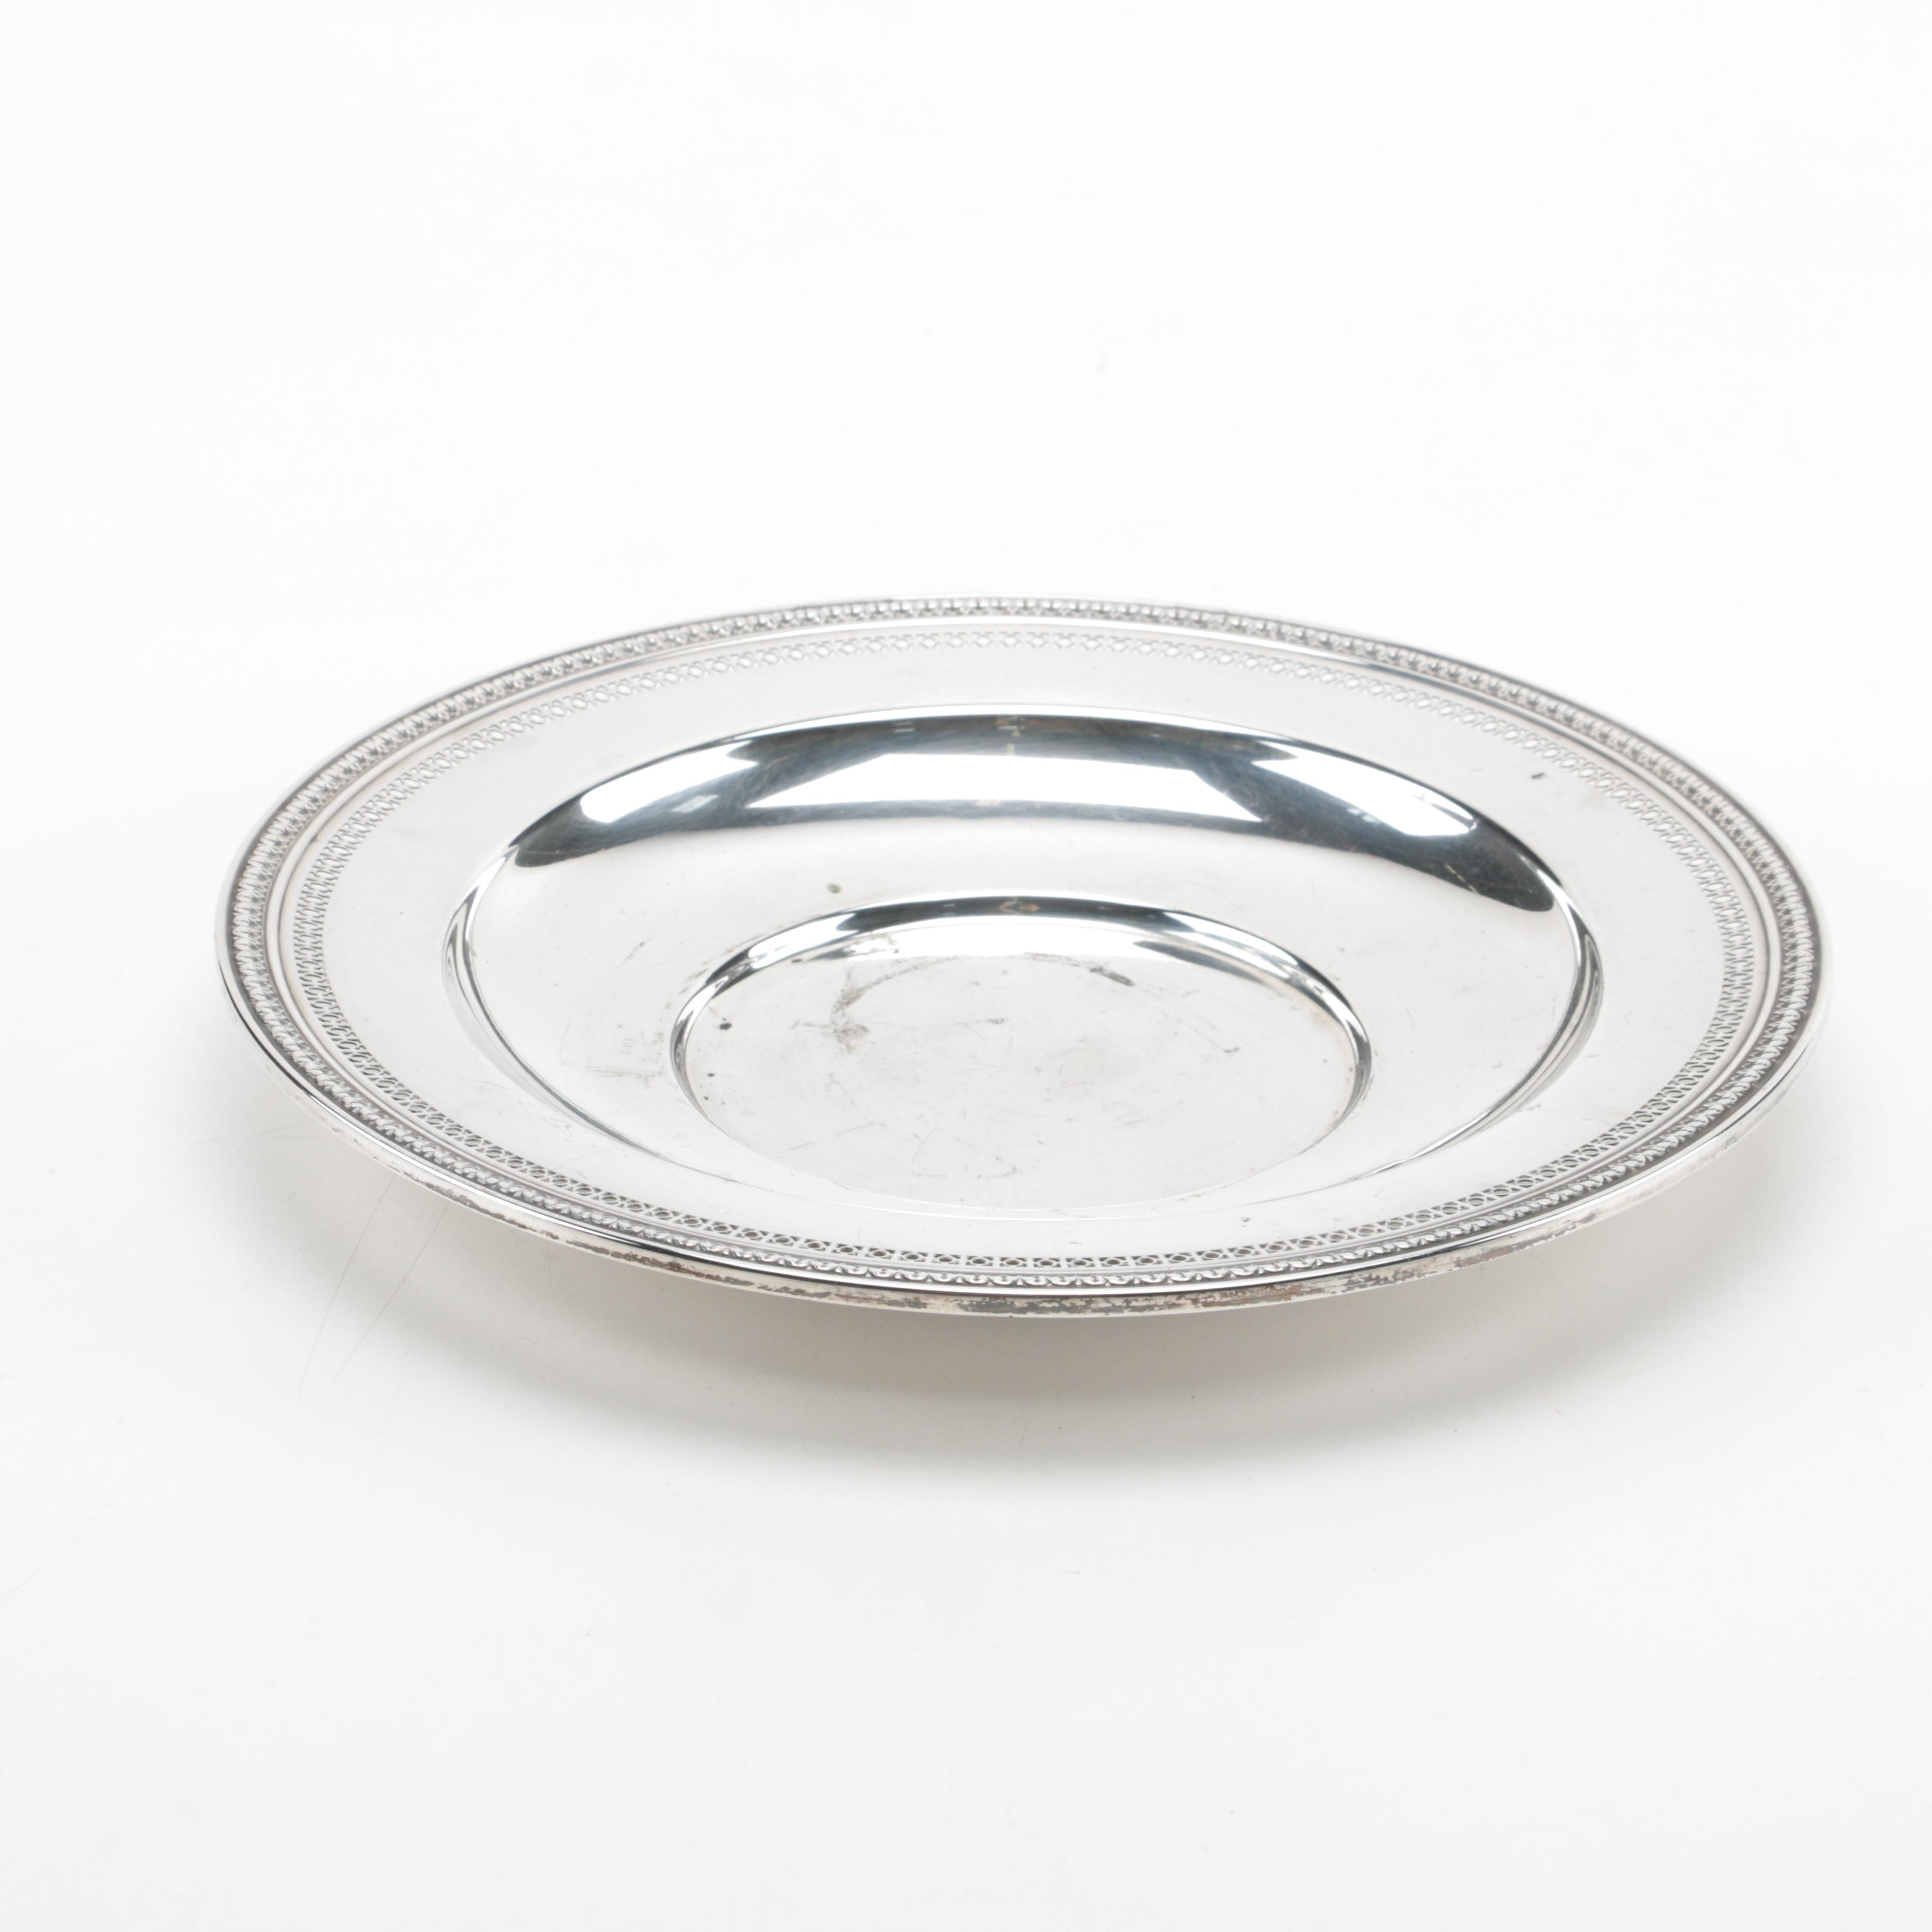 International Silver Co. Sterling Silver Dish